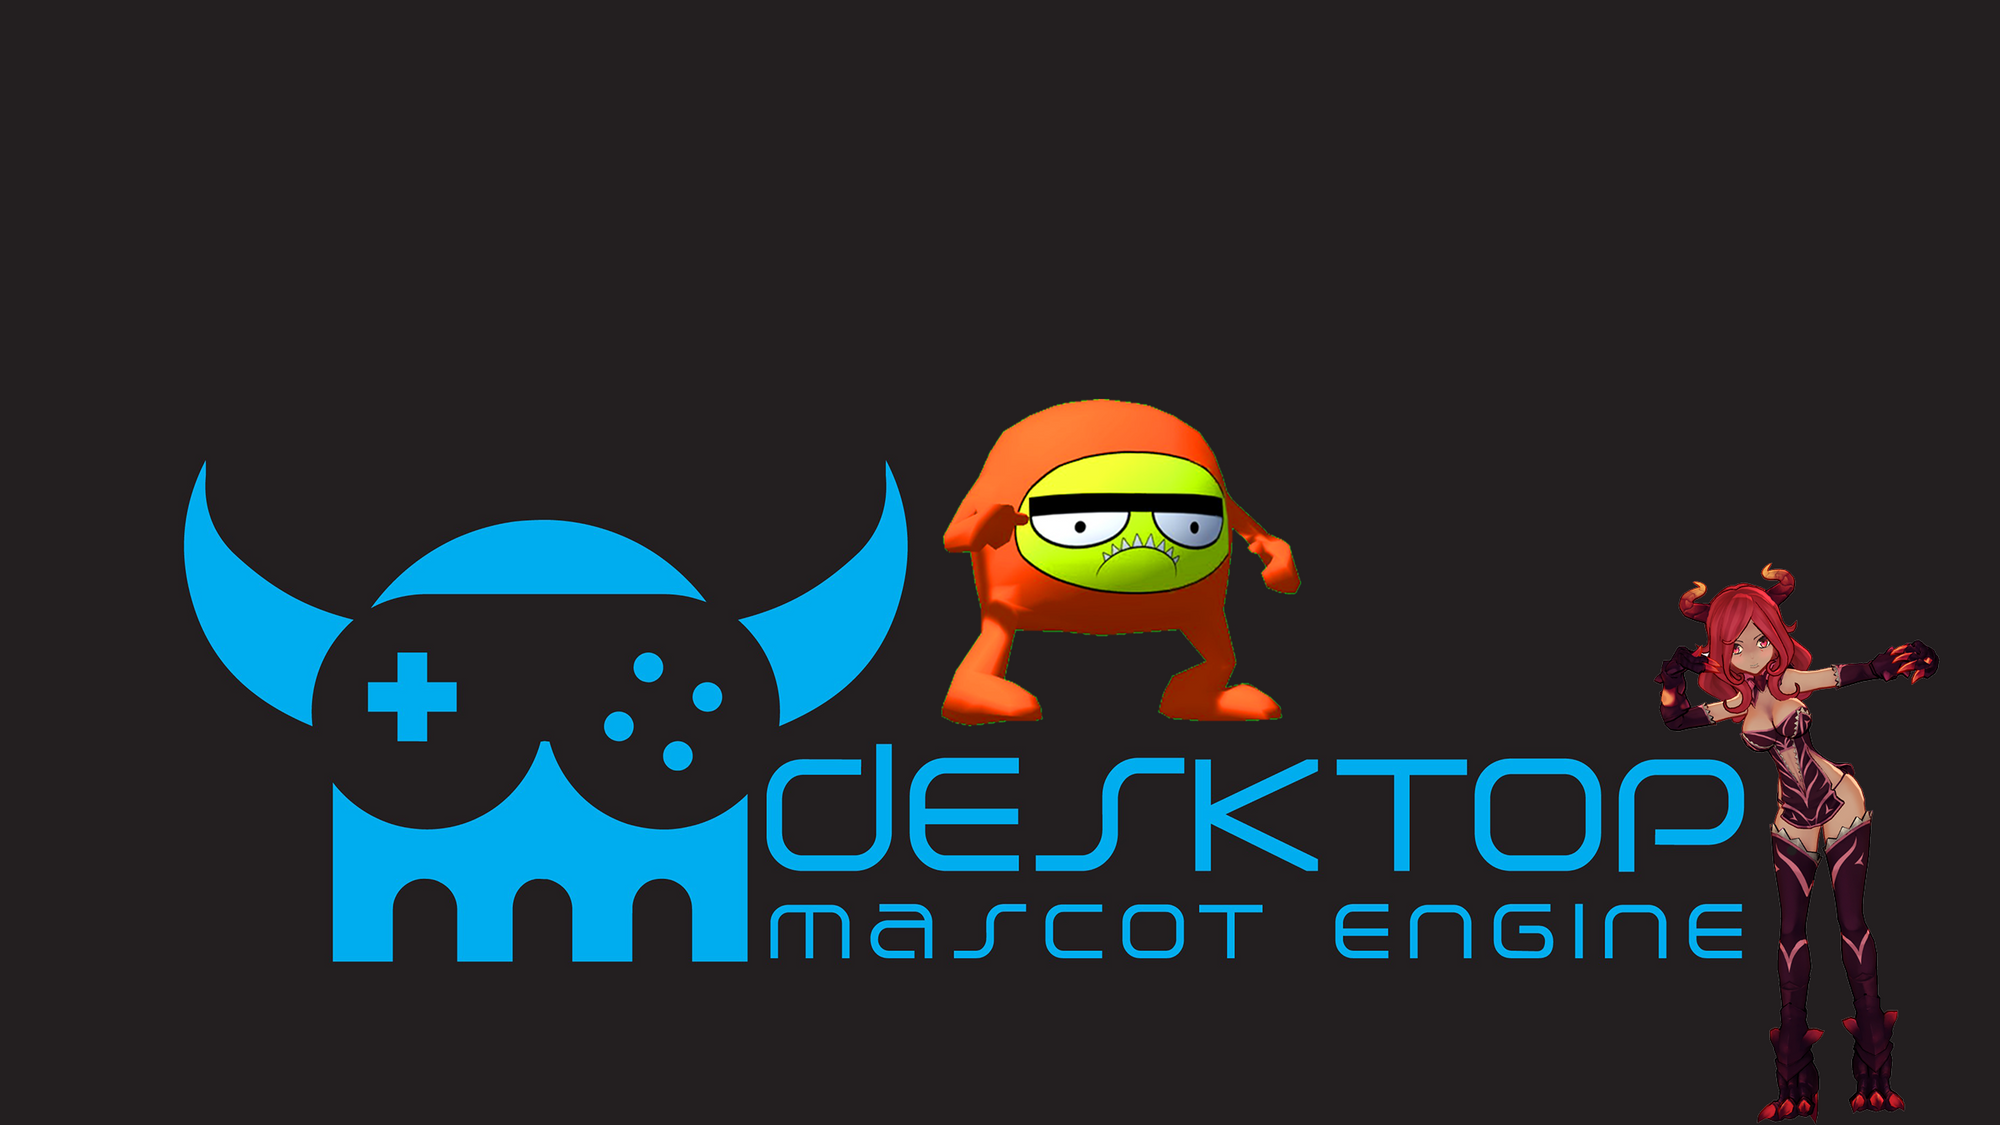 Desktop Mascot Engine